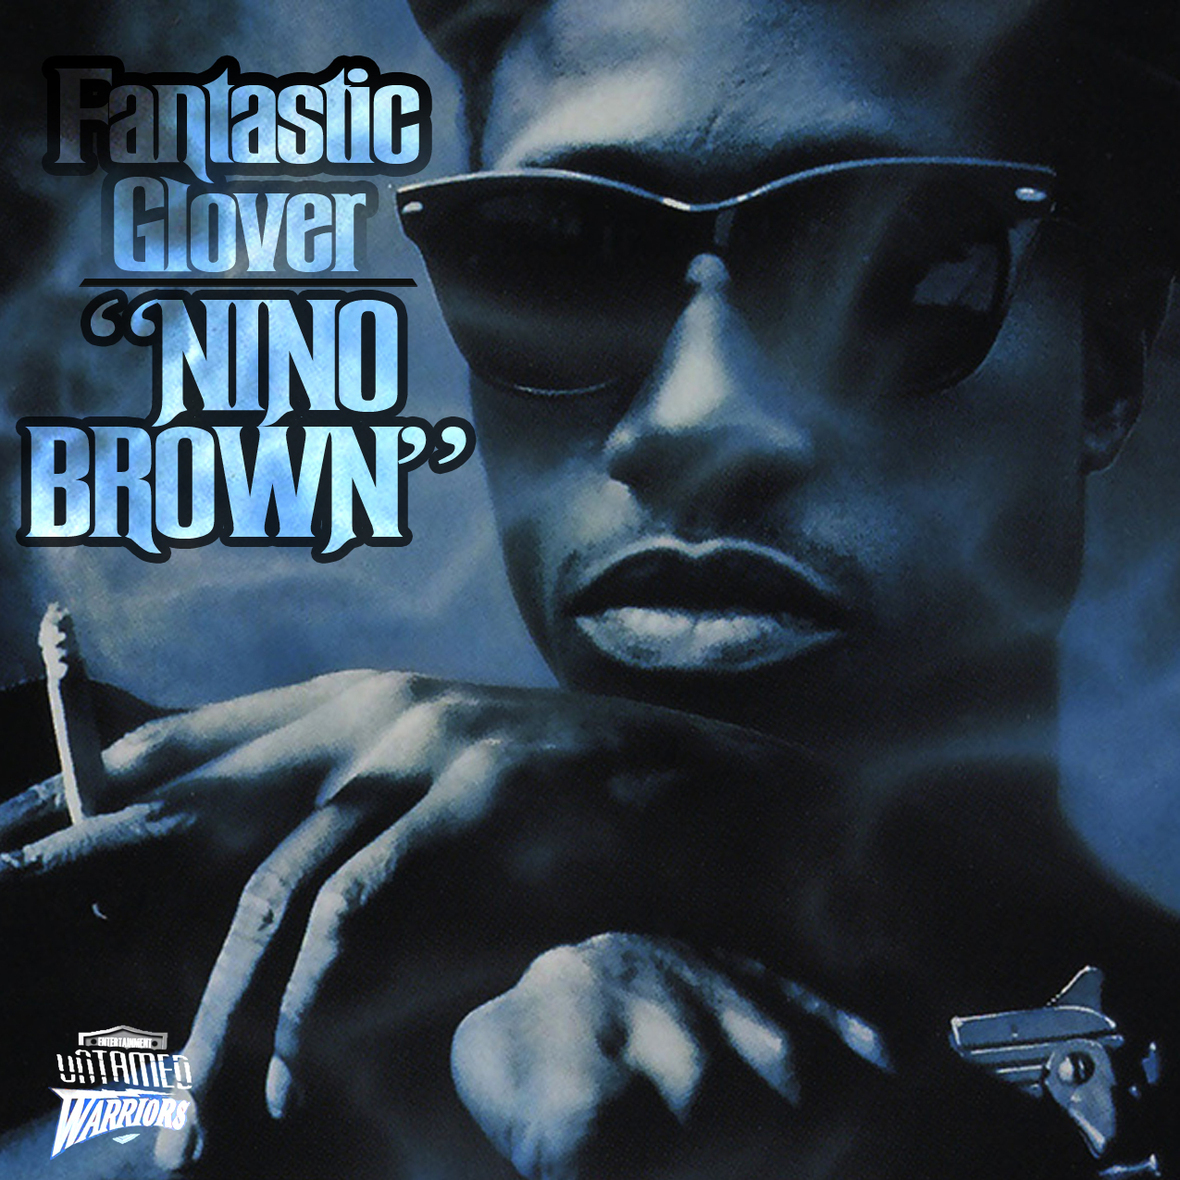 NINO BROWN FG